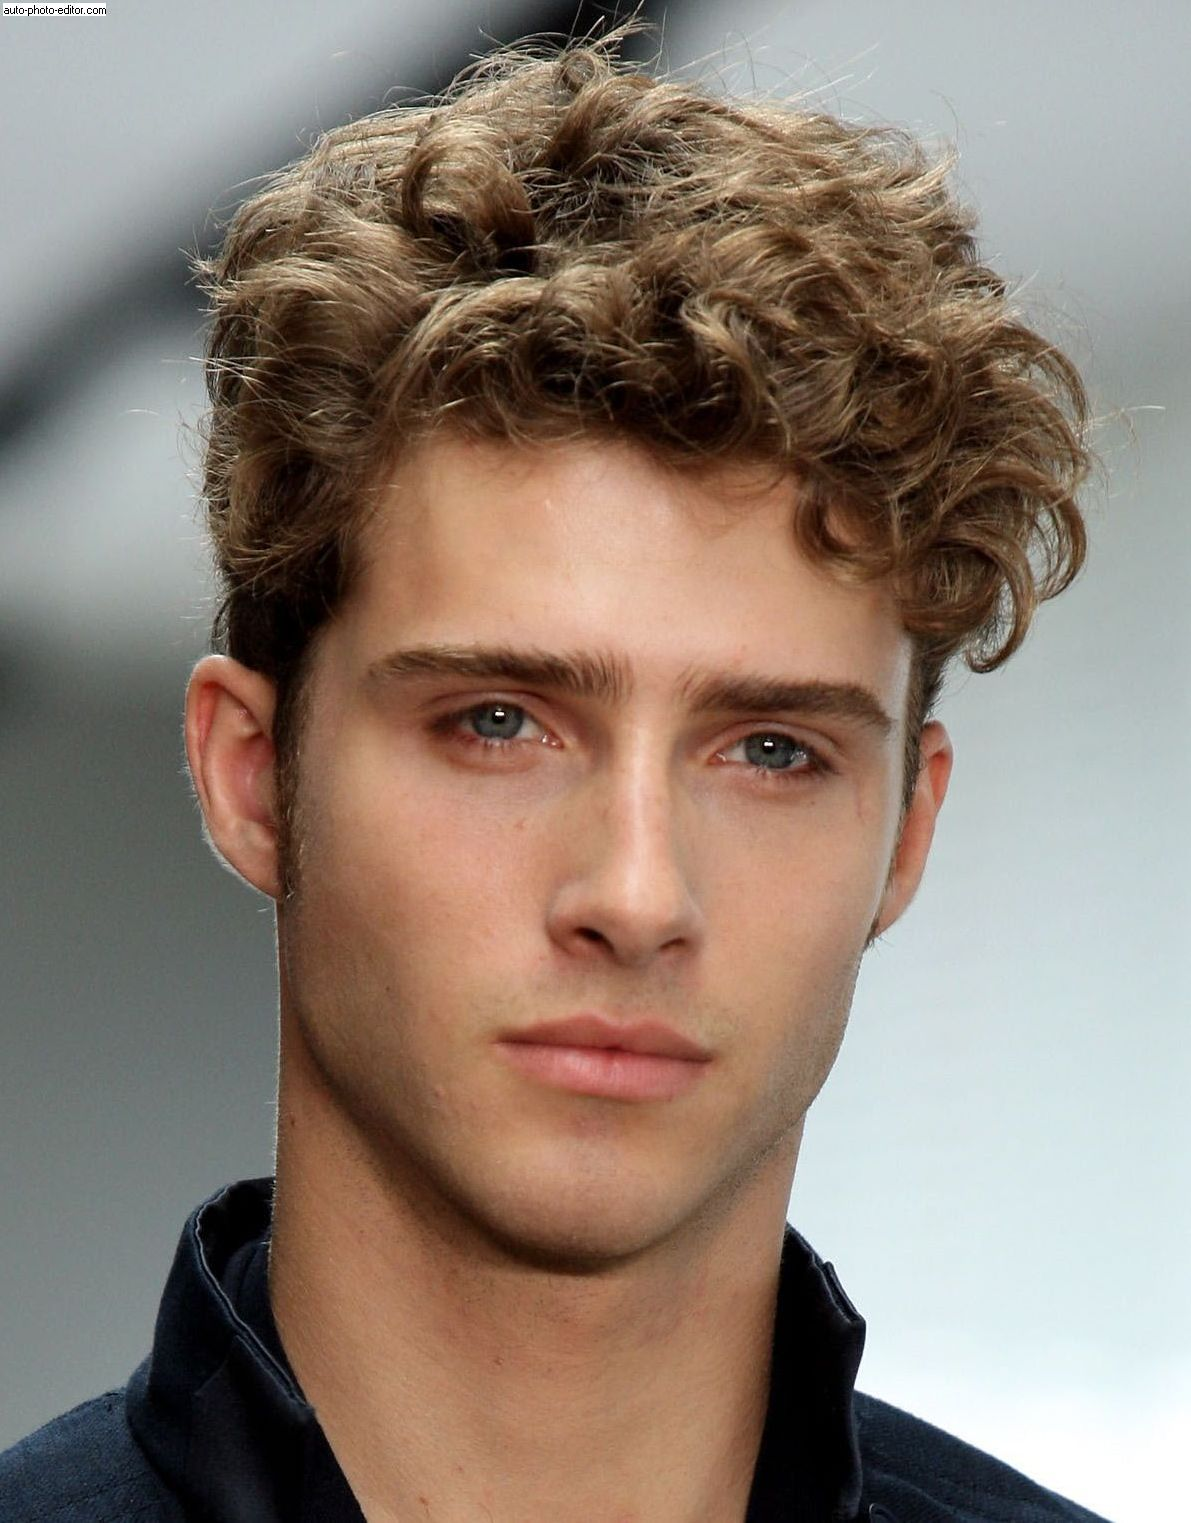 Curly Hairstyles For Men | Curly hairstyles, Curly and Galleries